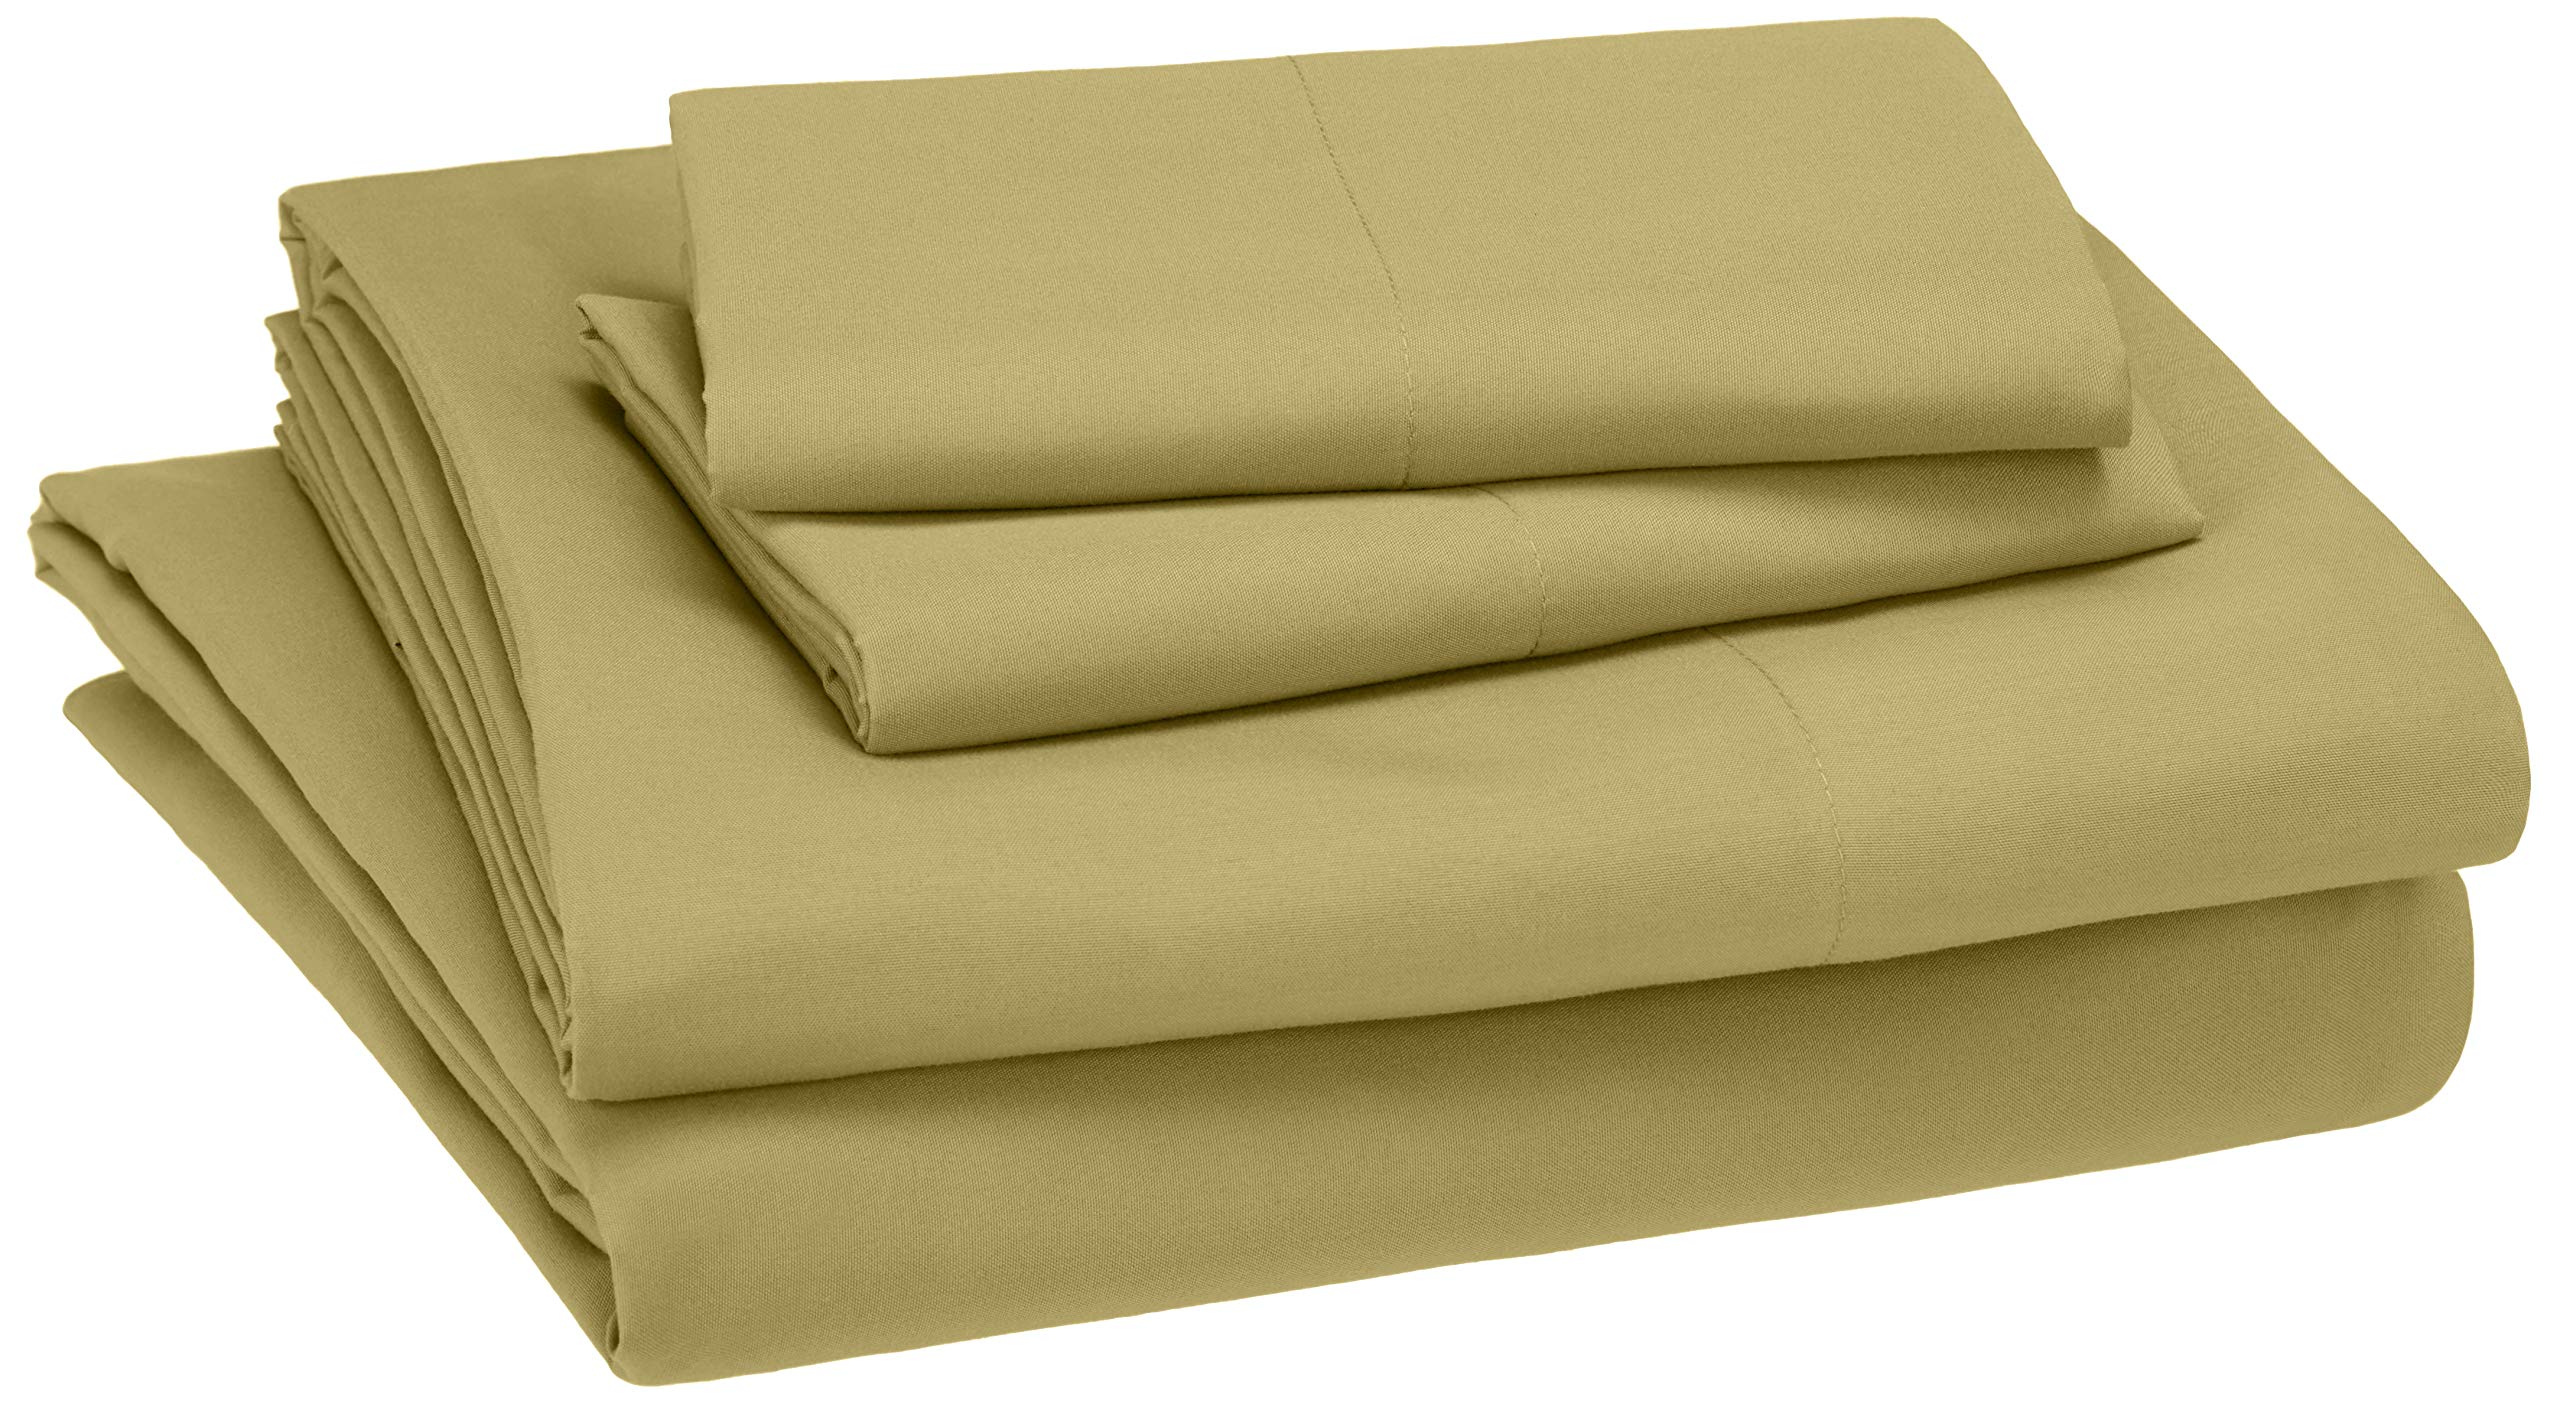 AmazonBasics Kid's Sheet Set - Soft, Easy-Wash Lightweight Microfiber - Queen, Mossy Green